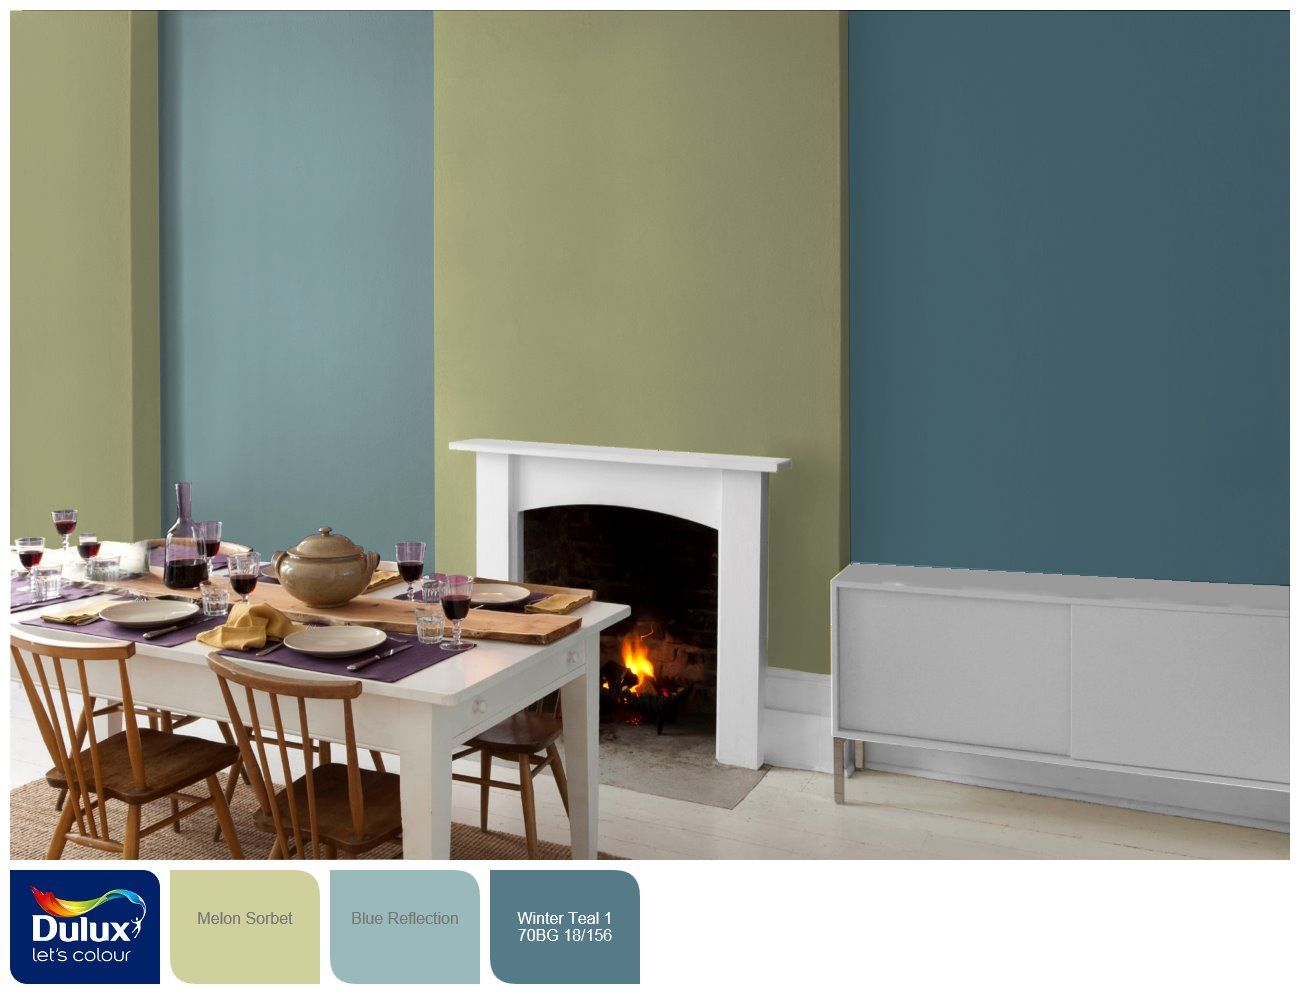 Colours that go with melon sorbet blue reflection melon sorbet winter teal 1 dulux for Dulux colour schemes for living rooms